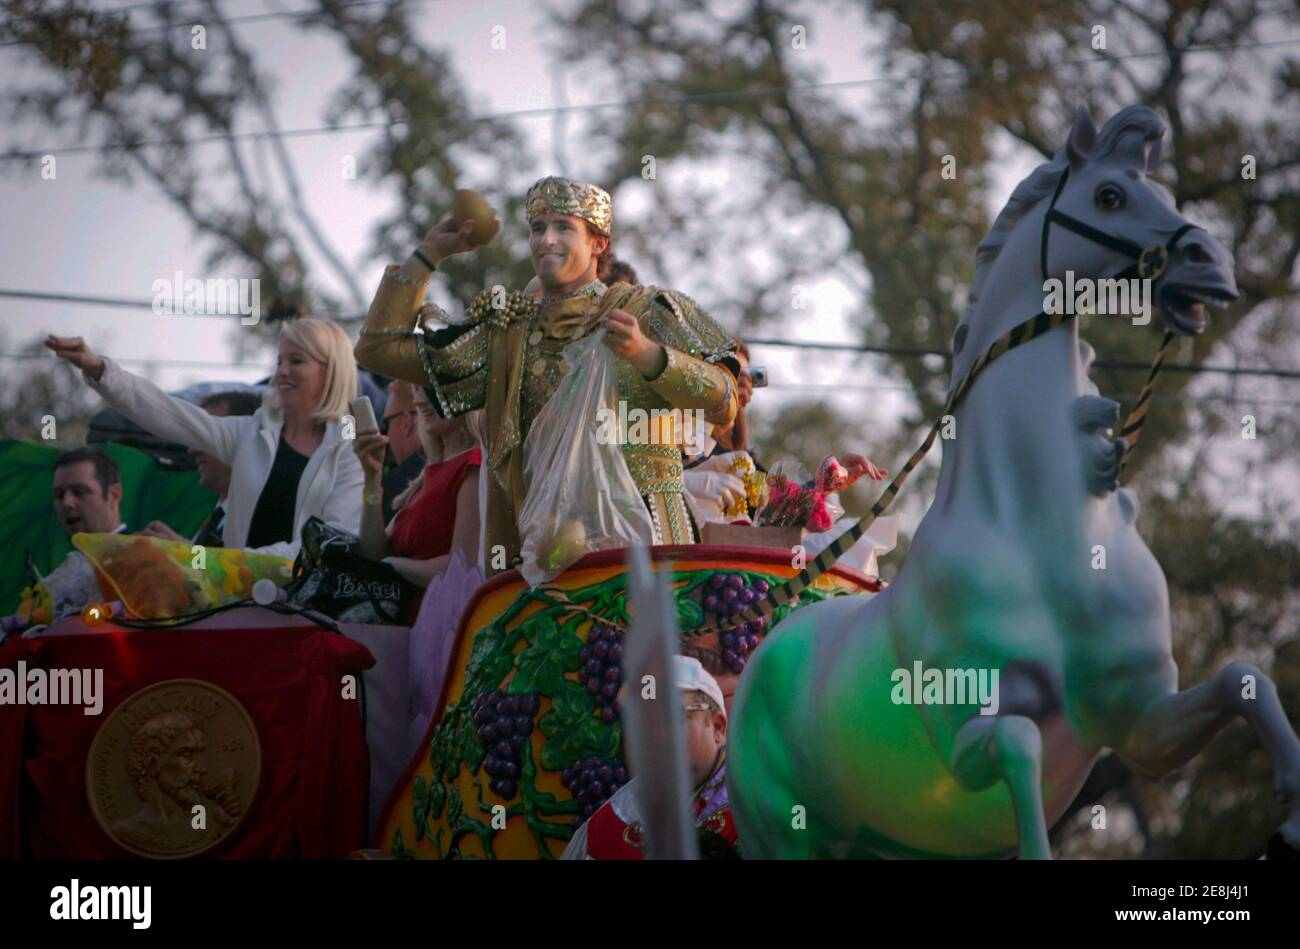 New Orleans Saints' quarterback Drew Brees, dressed as King of Bacchus, throws a toy football during the Bacchus Mardi Gras parade in New Orleans, Louisiana February 14, 2010. REUTERS/Lee Celano (UNITED STATES - Tags: SPORT FOOTBALL SOCIETY) Stock Photo